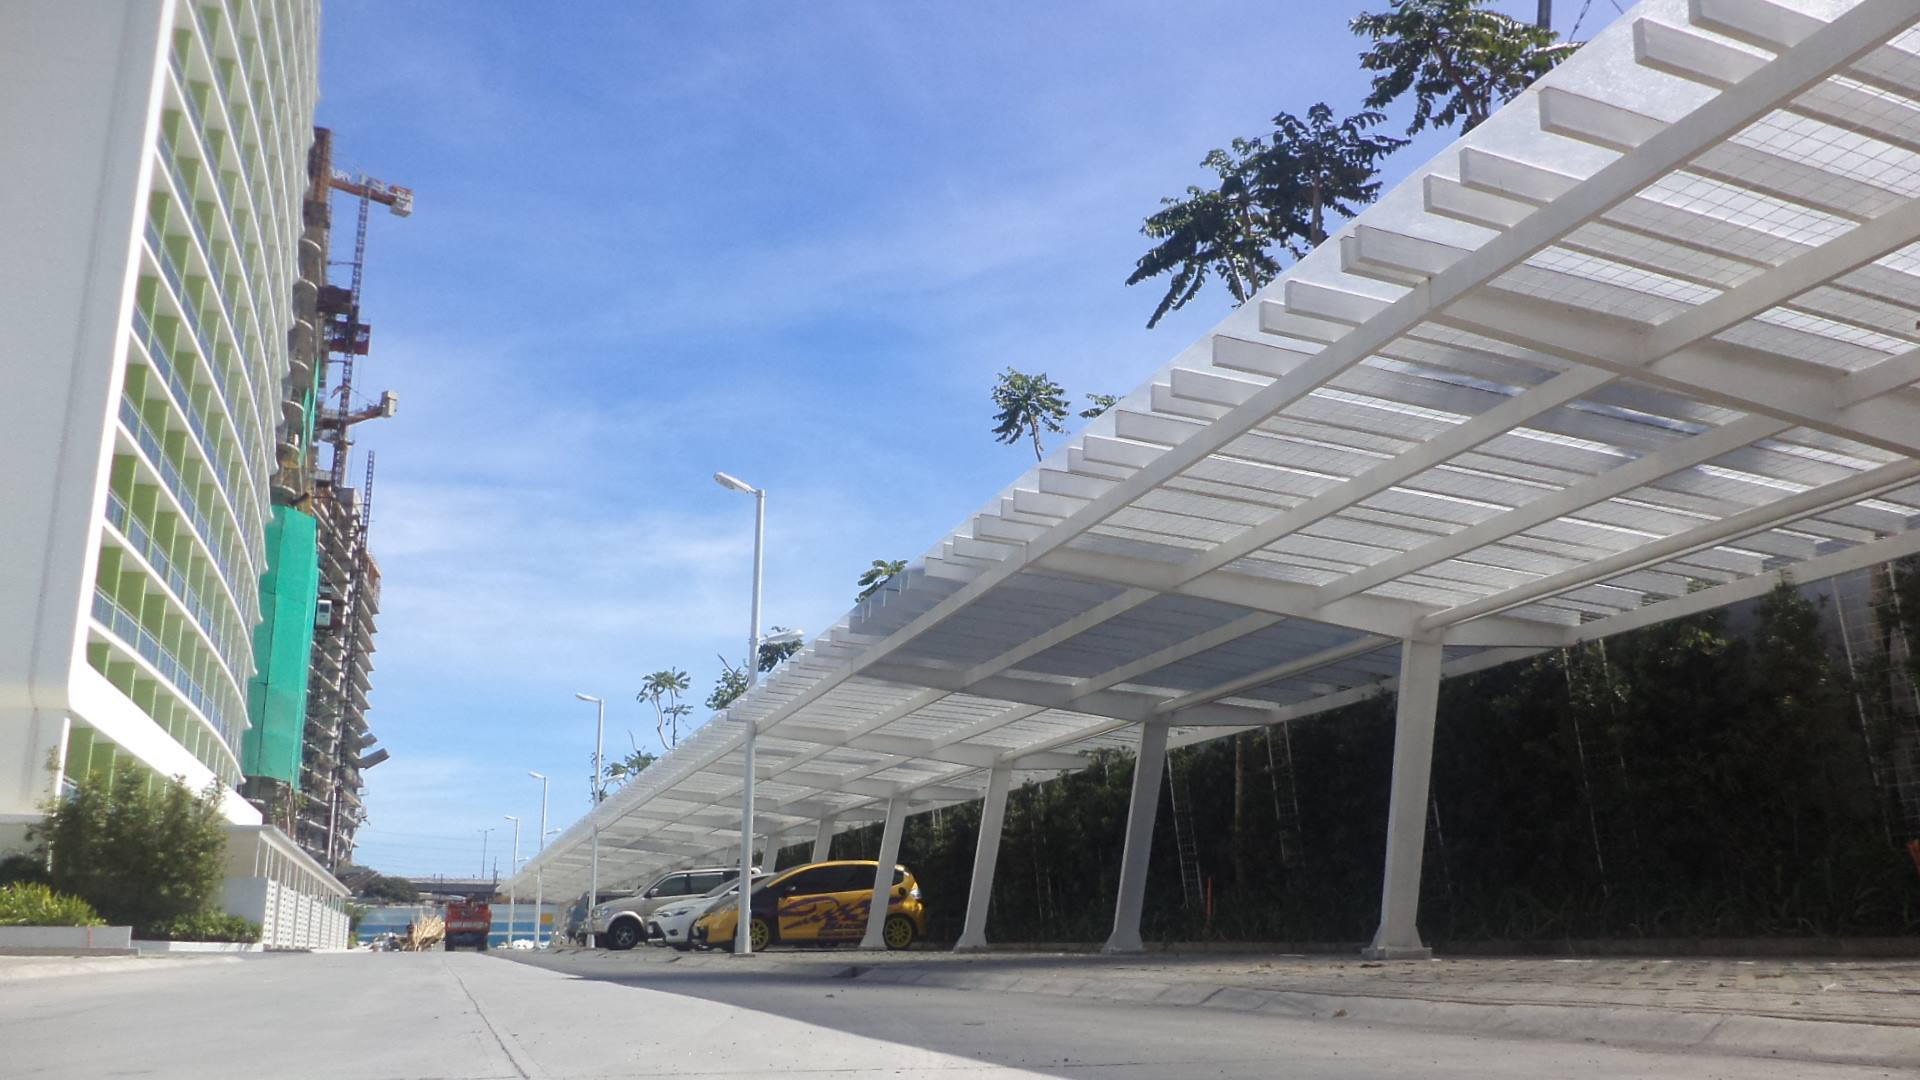 Polycarbonate Solid Sheet Philippines, Condo Roofing Design Installation Philippines